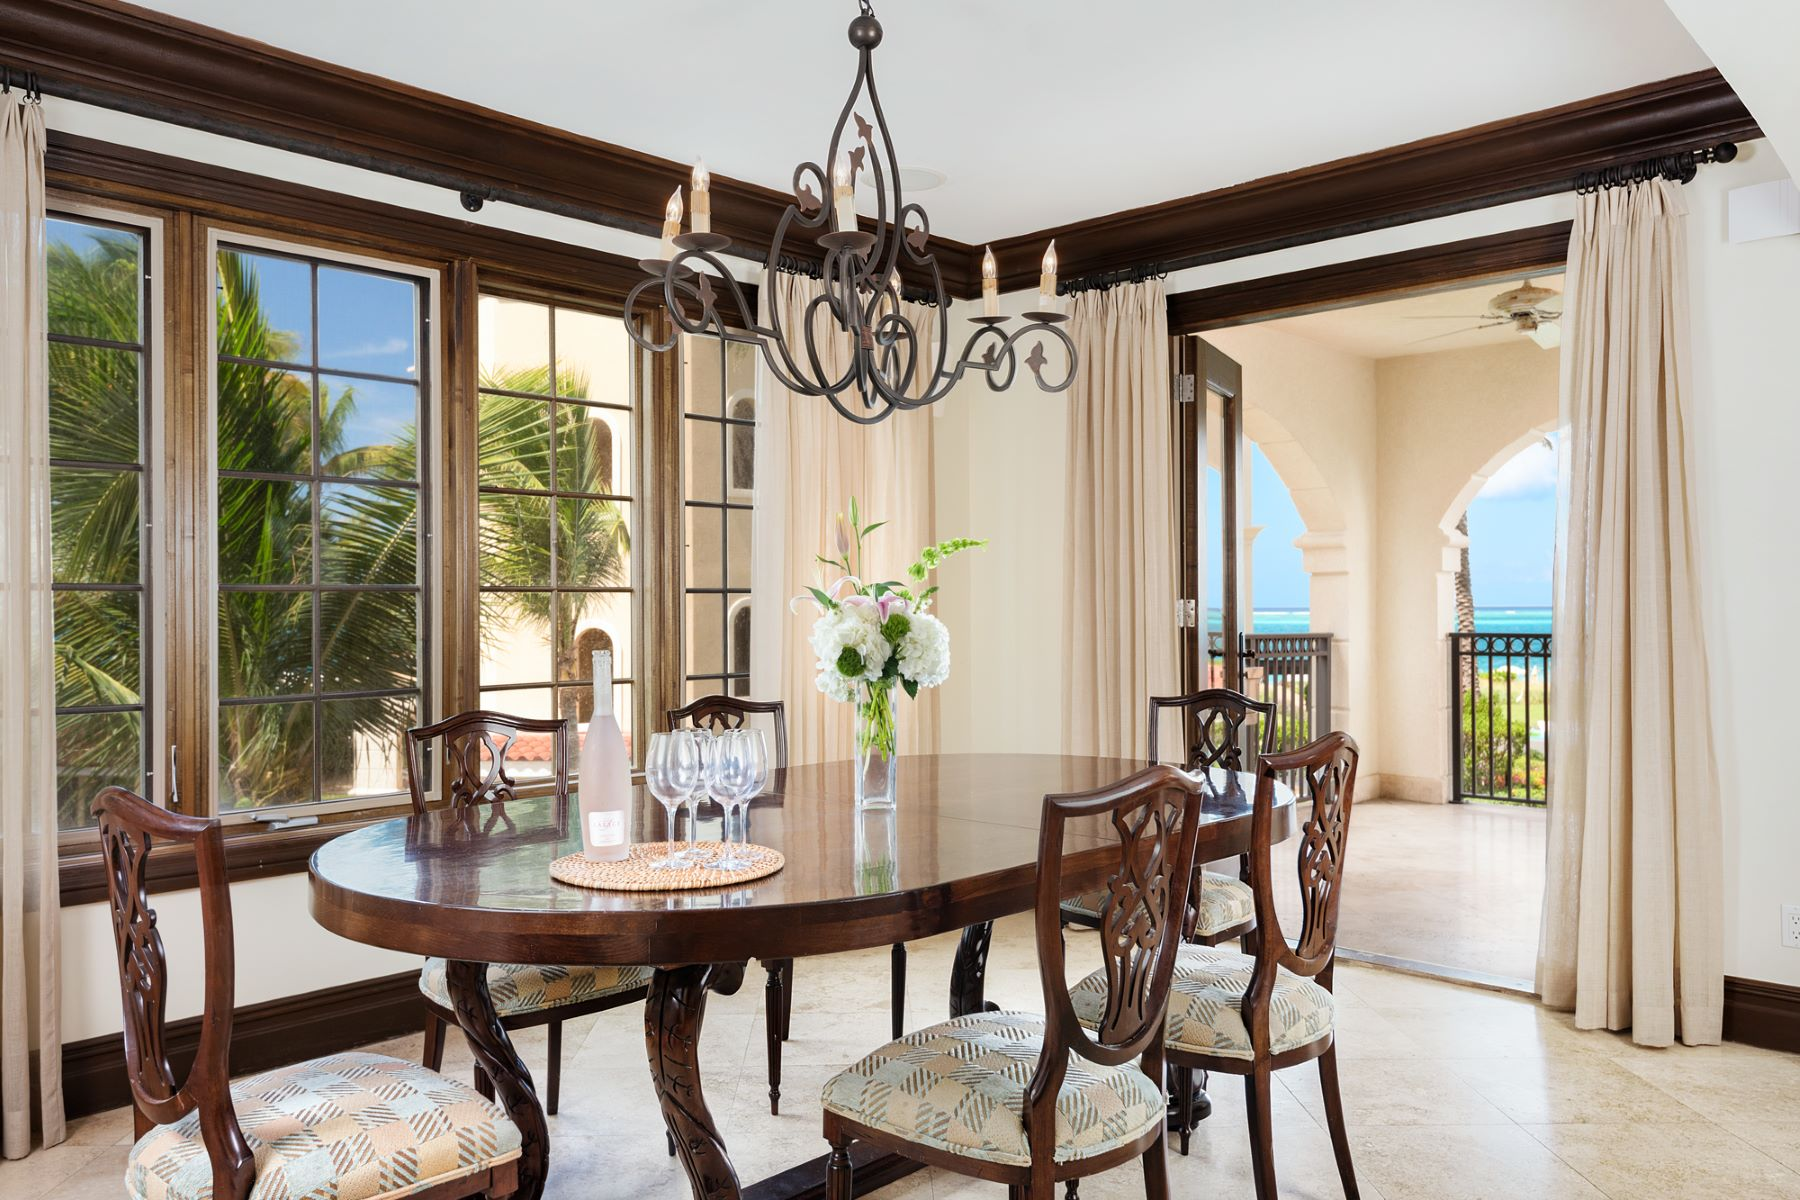 Additional photo for property listing at The Somerset D102 Beachfront The Somerset D102 Grace Bay, Providenciales TKCA 1ZZ Turks And Caicos Islands